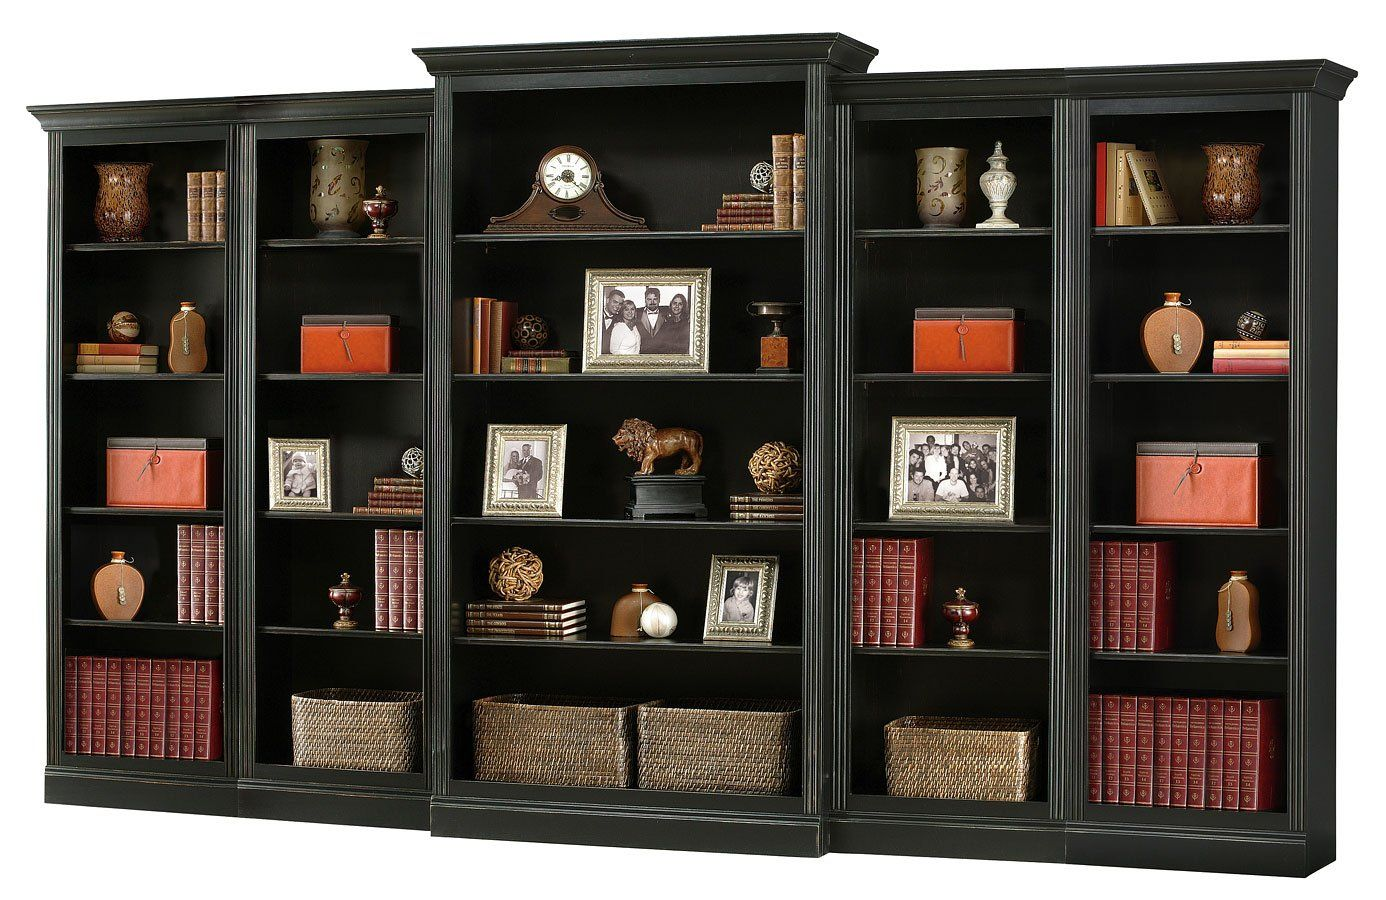 Oxford Large Bookcase Wall Antique Black Bookcase Wall Large